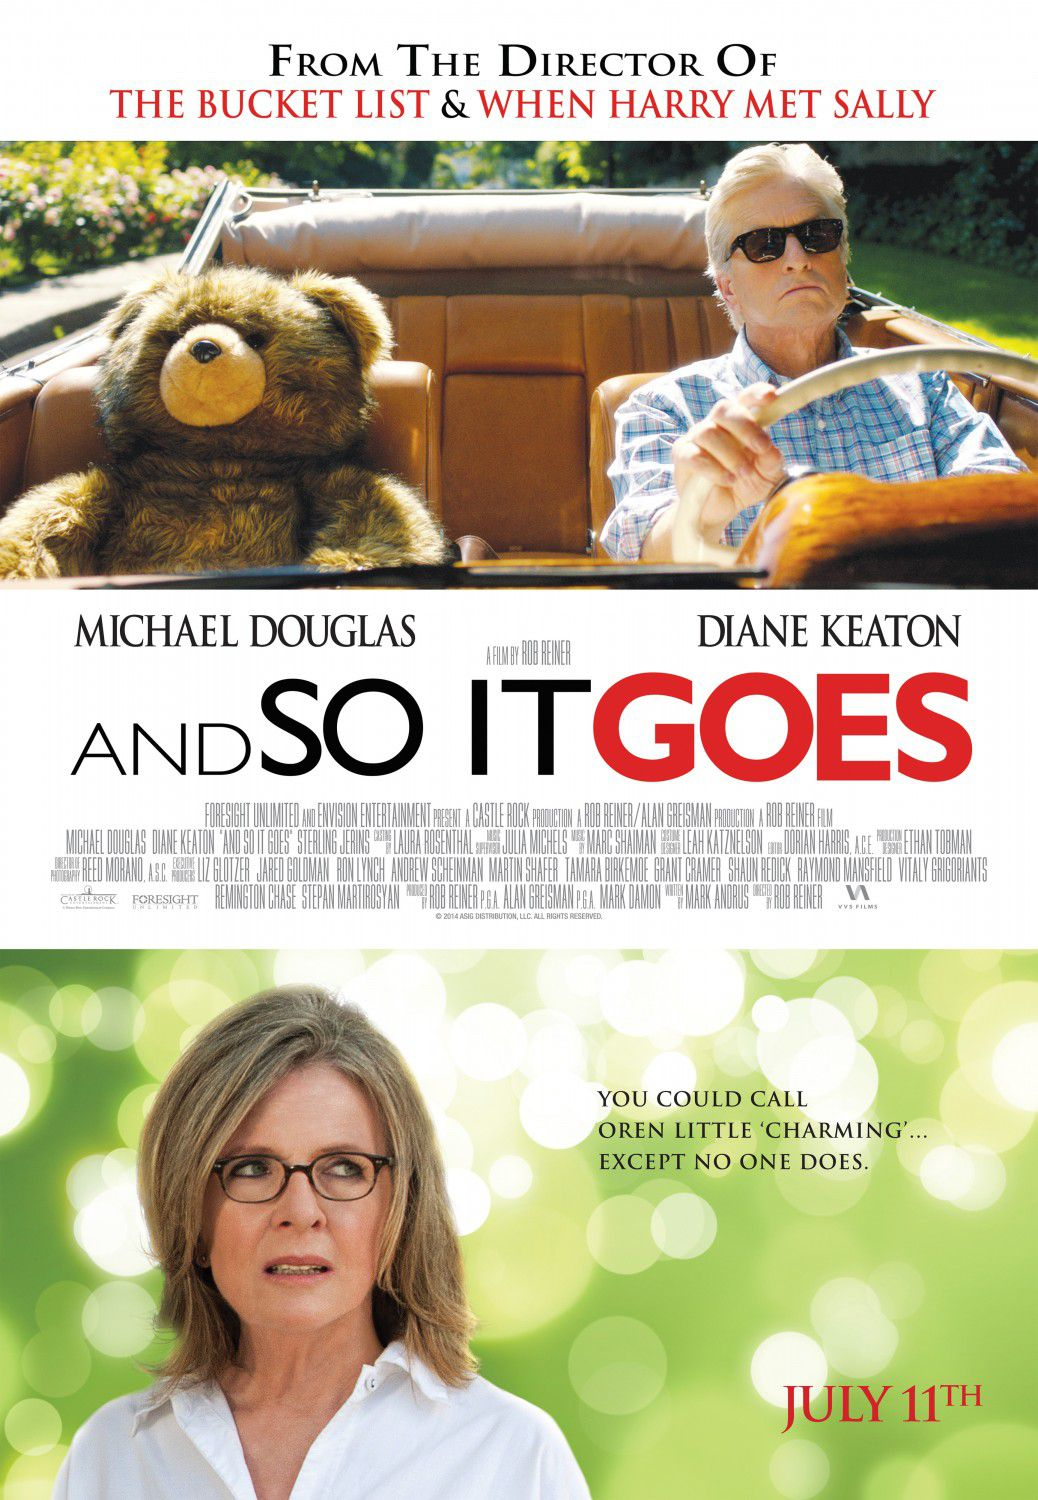 And so it goes - Mai così Vicini - Romance - Diane Keaton - Michael Douglas - film poster bear